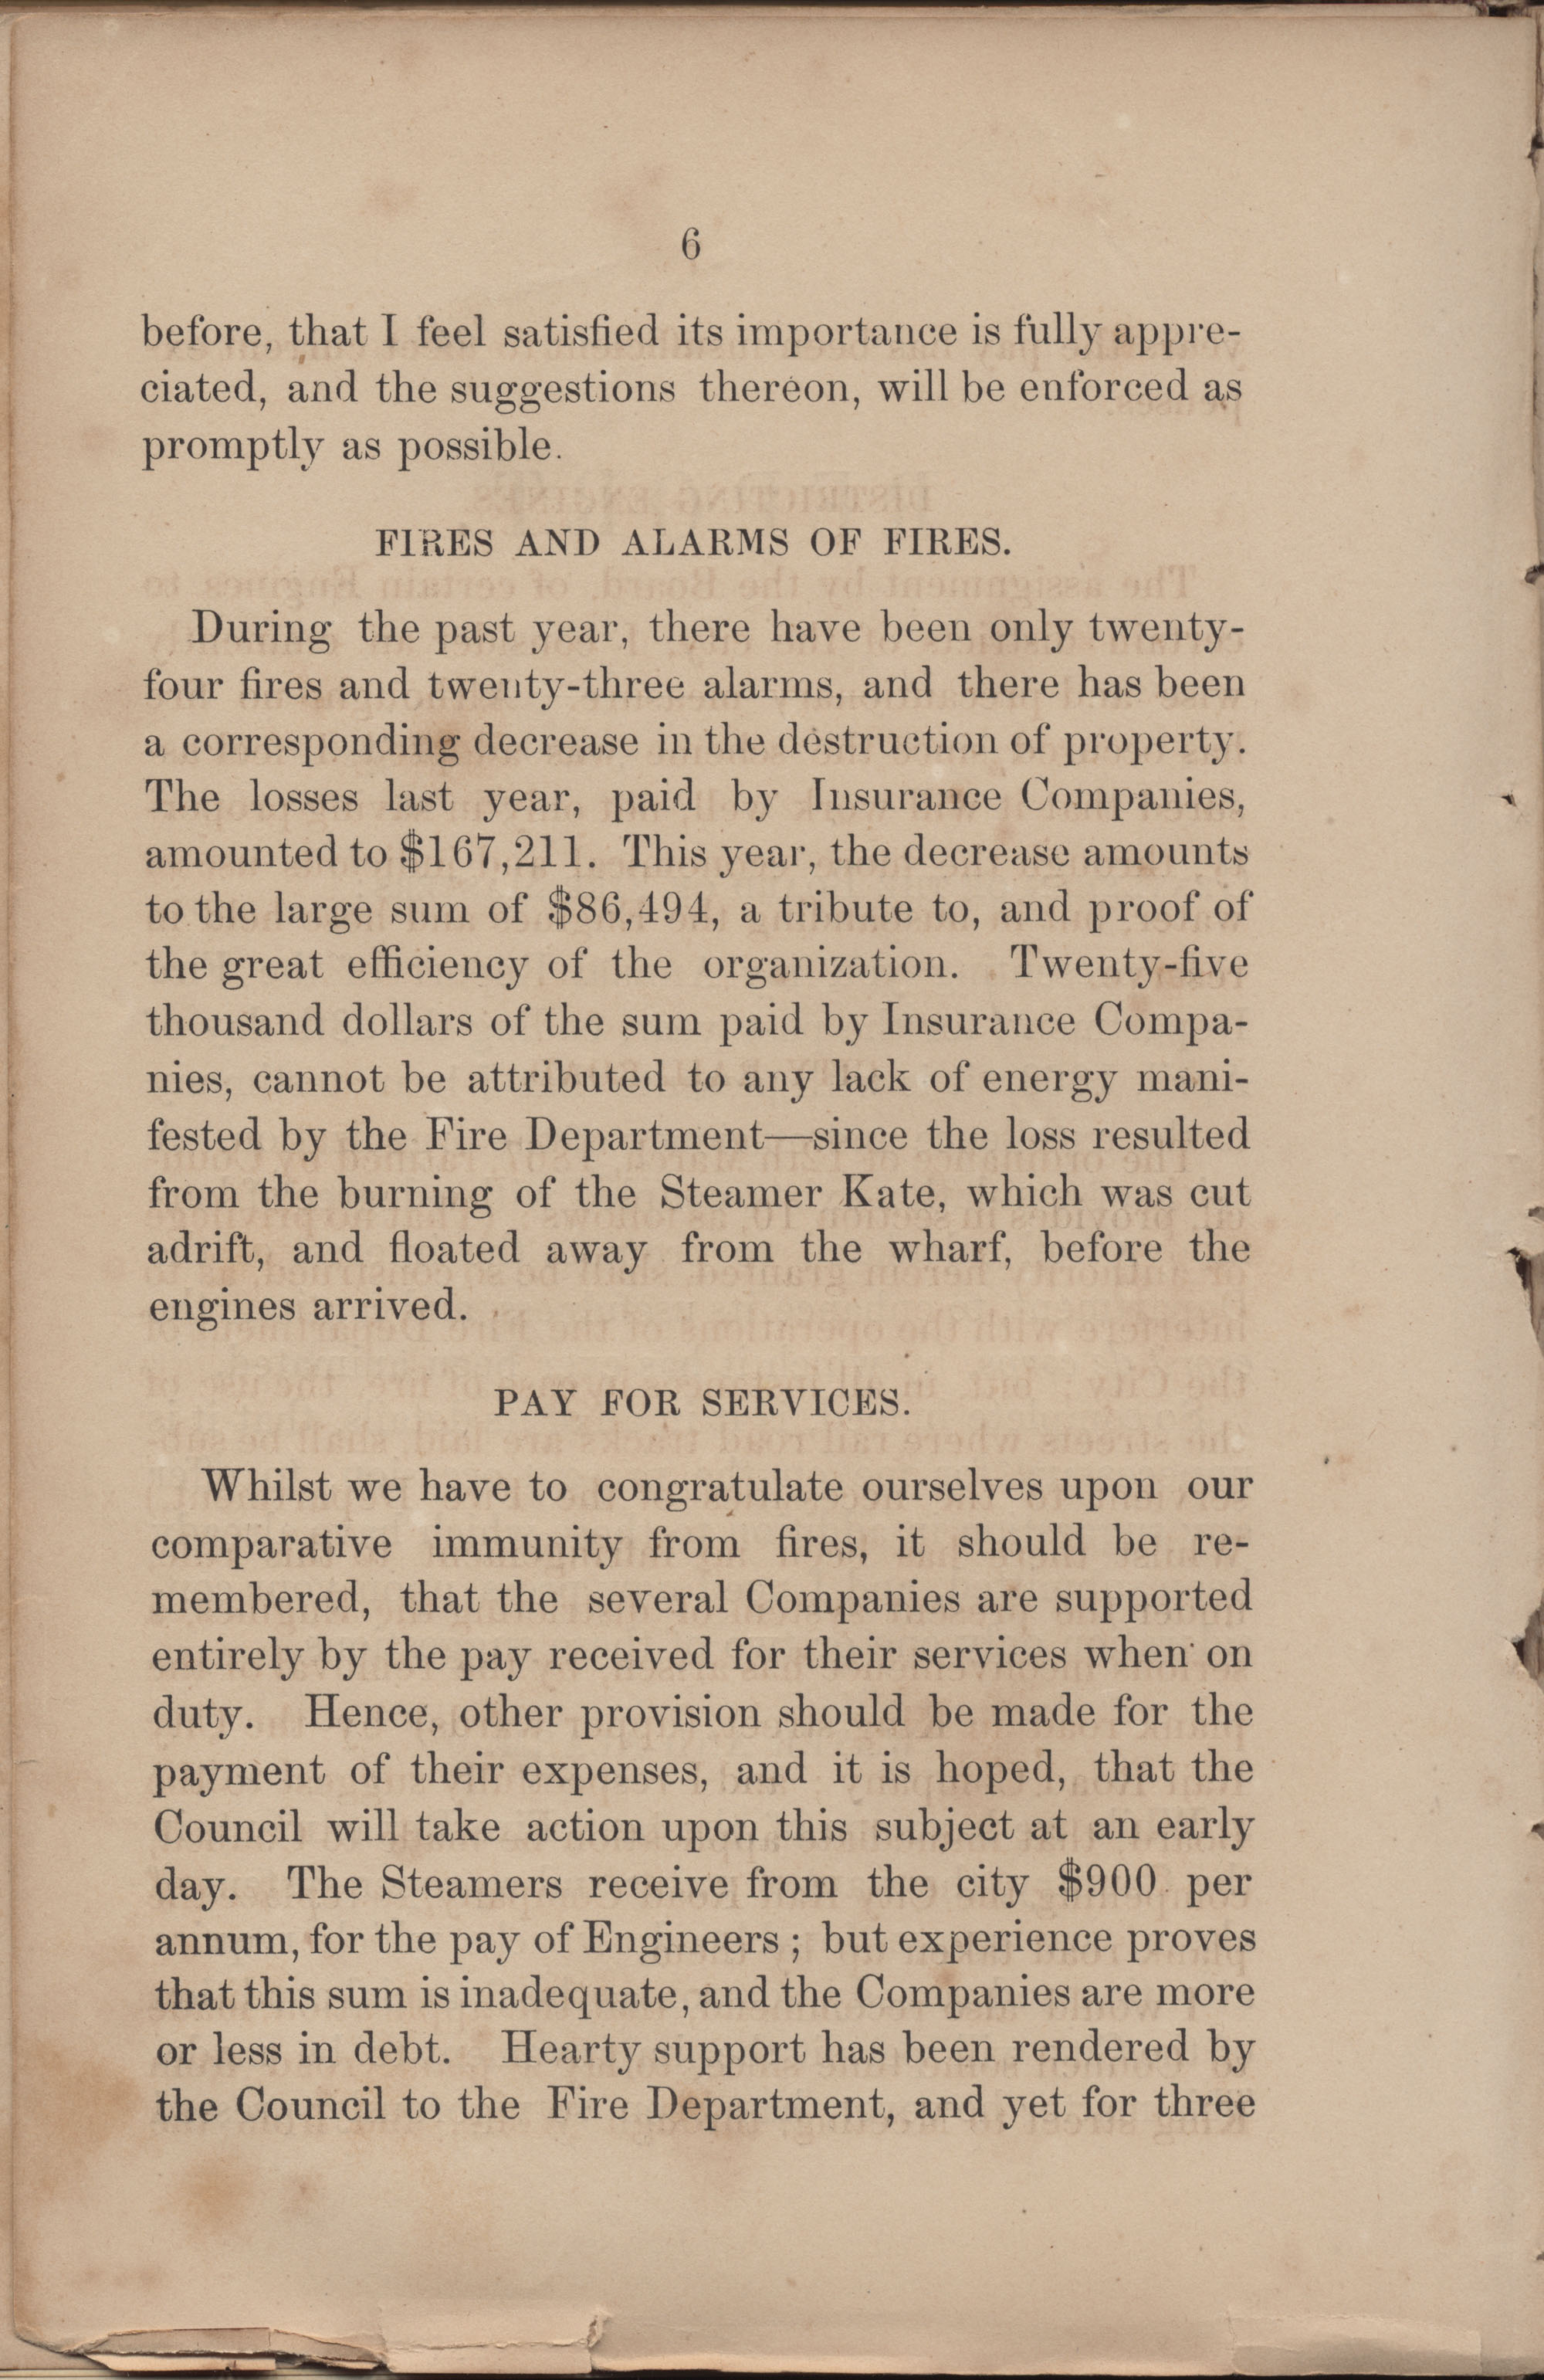 Annual Report of the Chief of the Fire Department of the City of Charleston, page 184